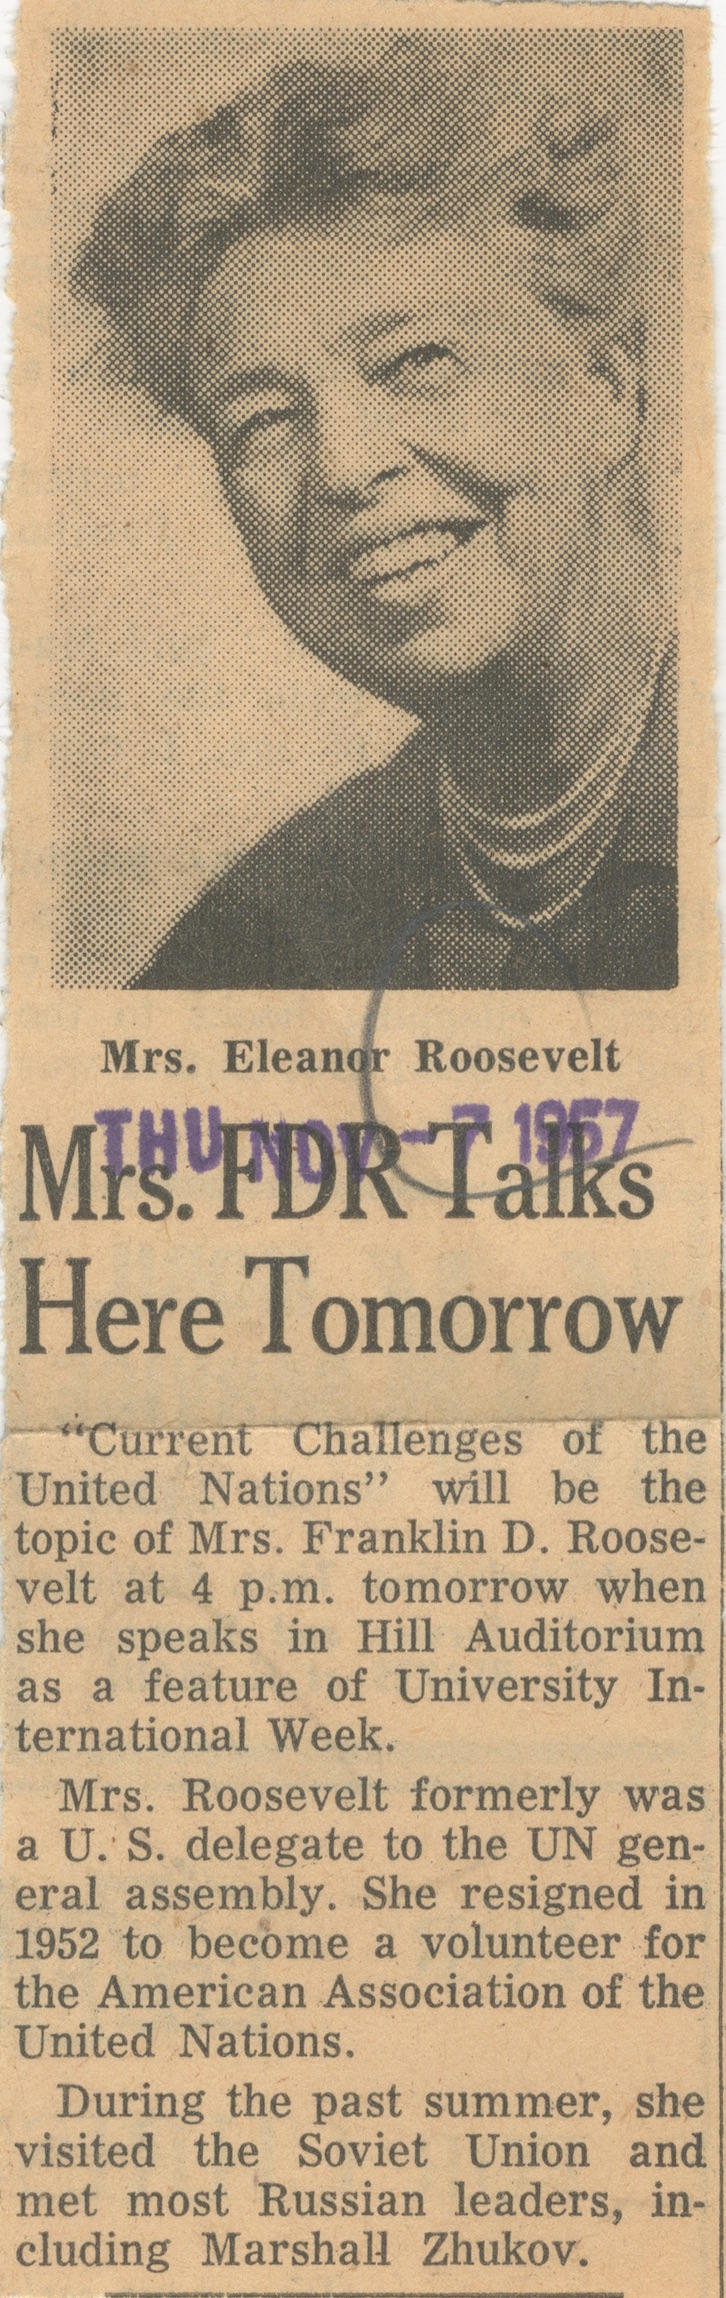 Mrs. FDR Talks Here Tomorrow image